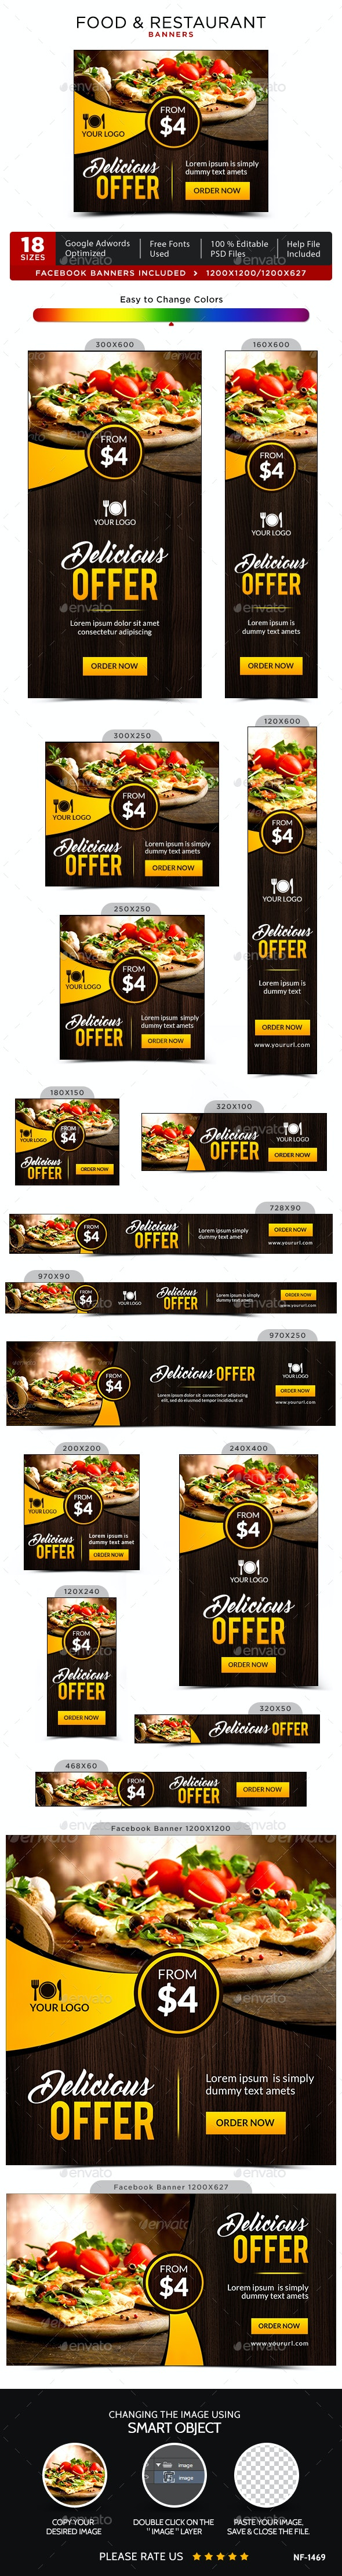 Food & Restaurant Banners - Banners & Ads Web Elements